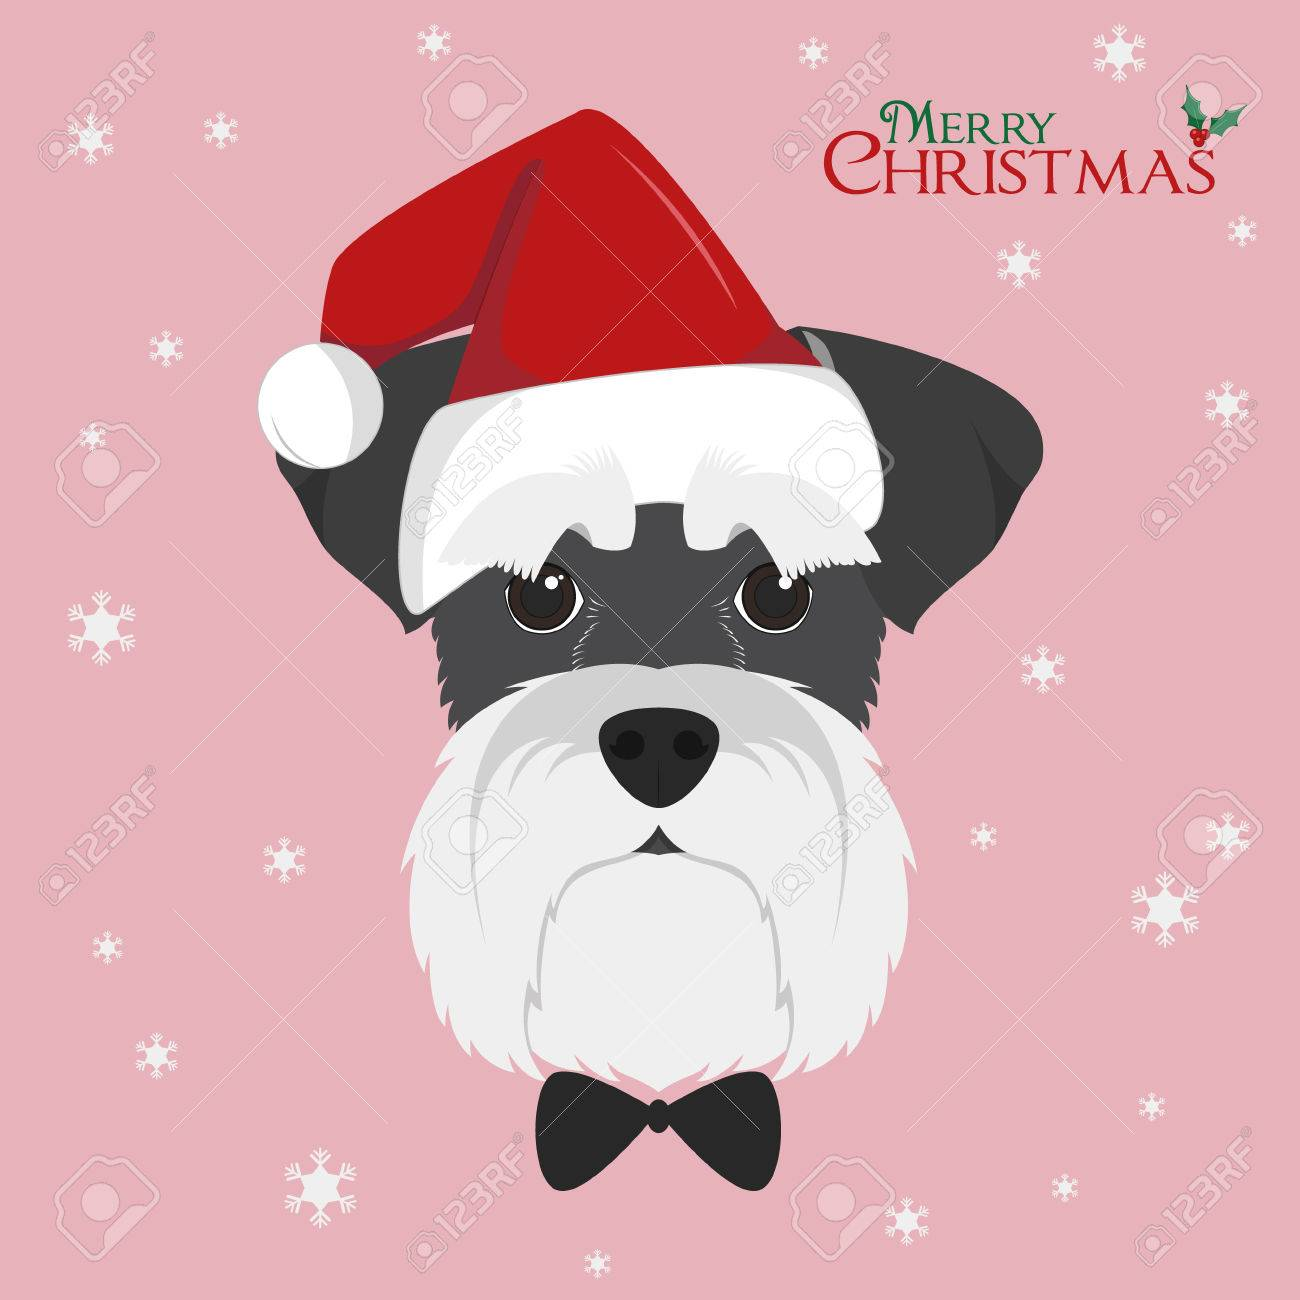 Christmas greeting card schnauzer dog with red santas hat christmas greeting card schnauzer dog with red santas hat stock vector 66826358 kristyandbryce Image collections